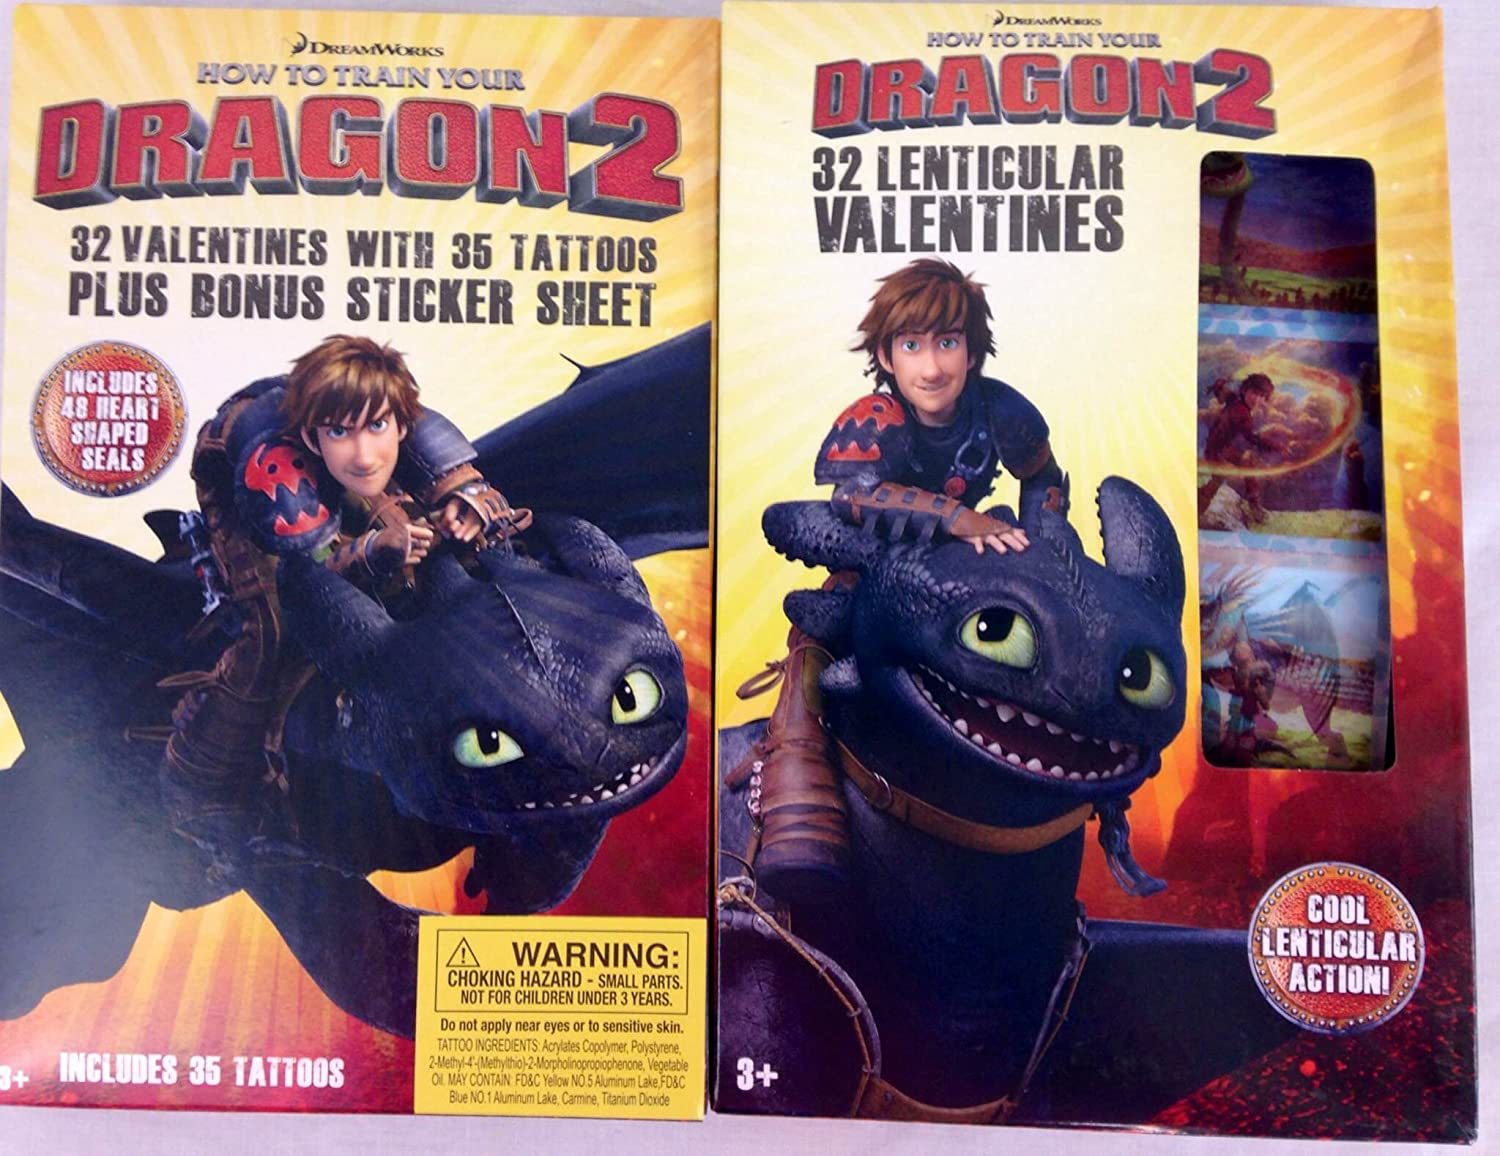 Amazon how to train your dragon 2 valentines cards 2 boxes amazon how to train your dragon 2 valentines cards 2 boxes toys games ccuart Choice Image